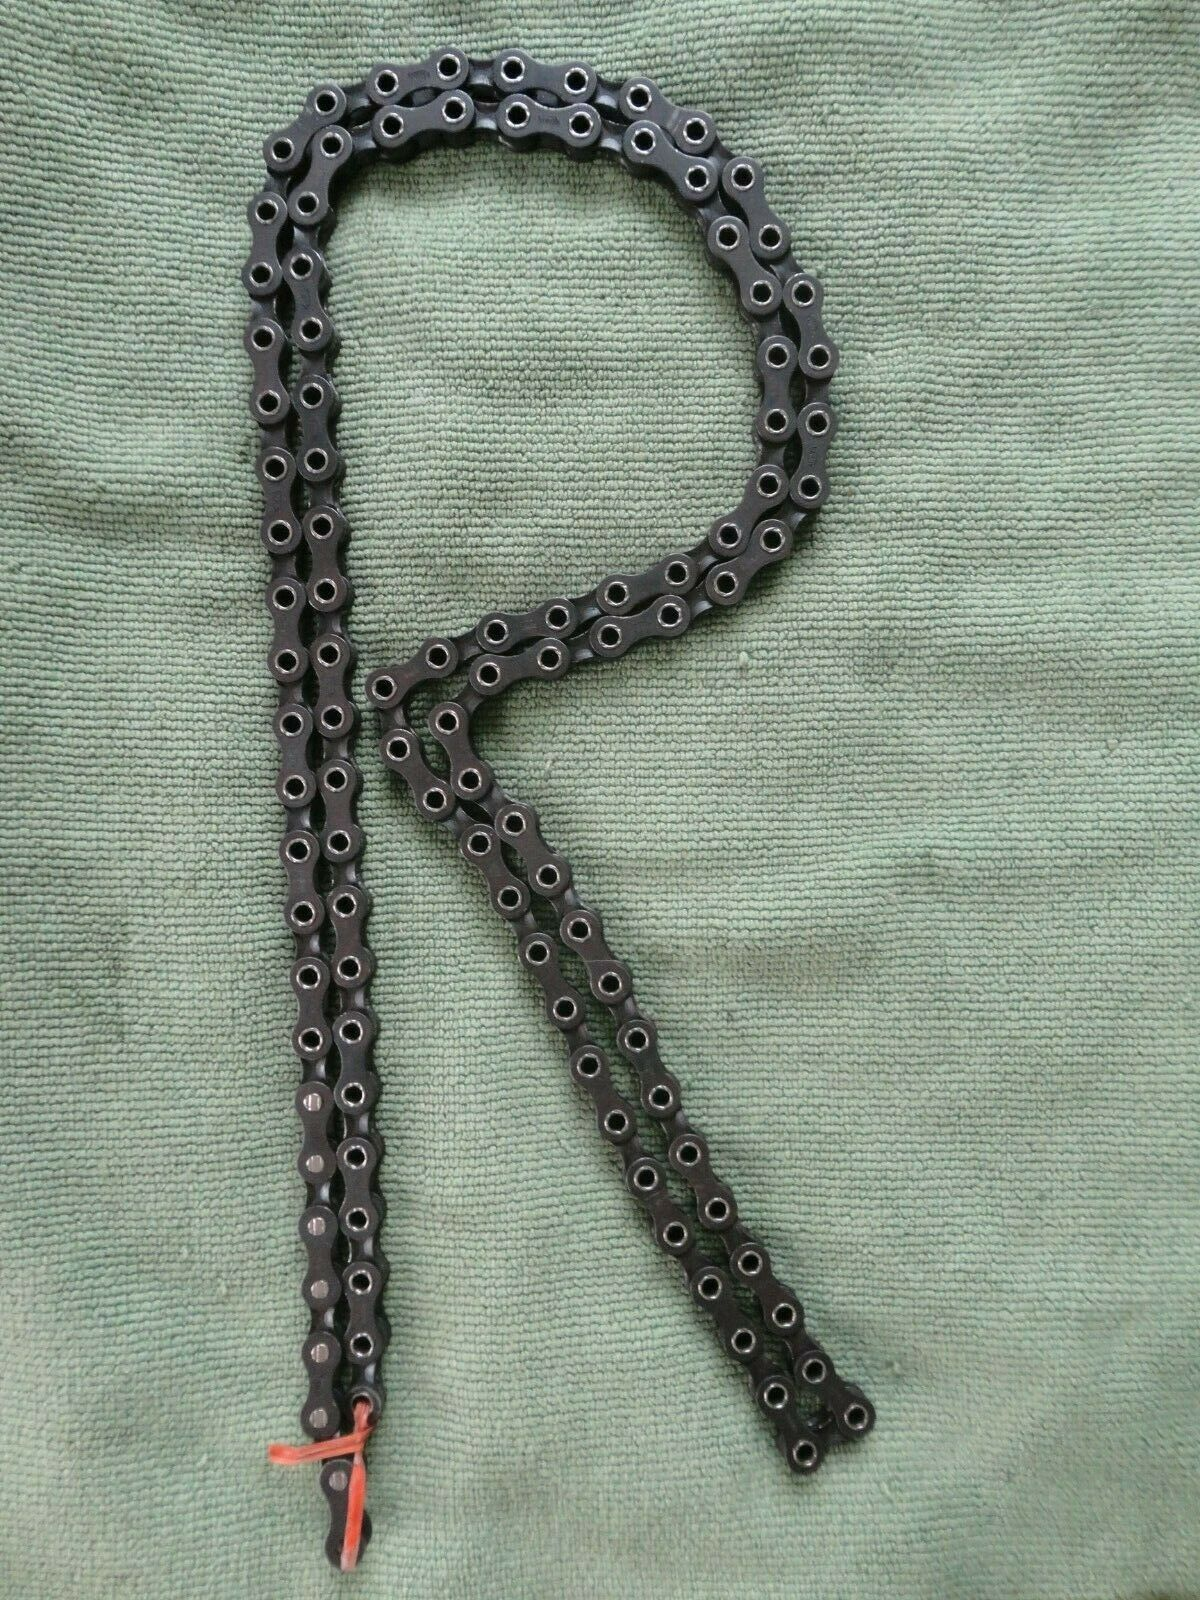 Regina Extra Superleggera Hollow Pin Chain 108 links Excellent  condition TakeOff  comfortably